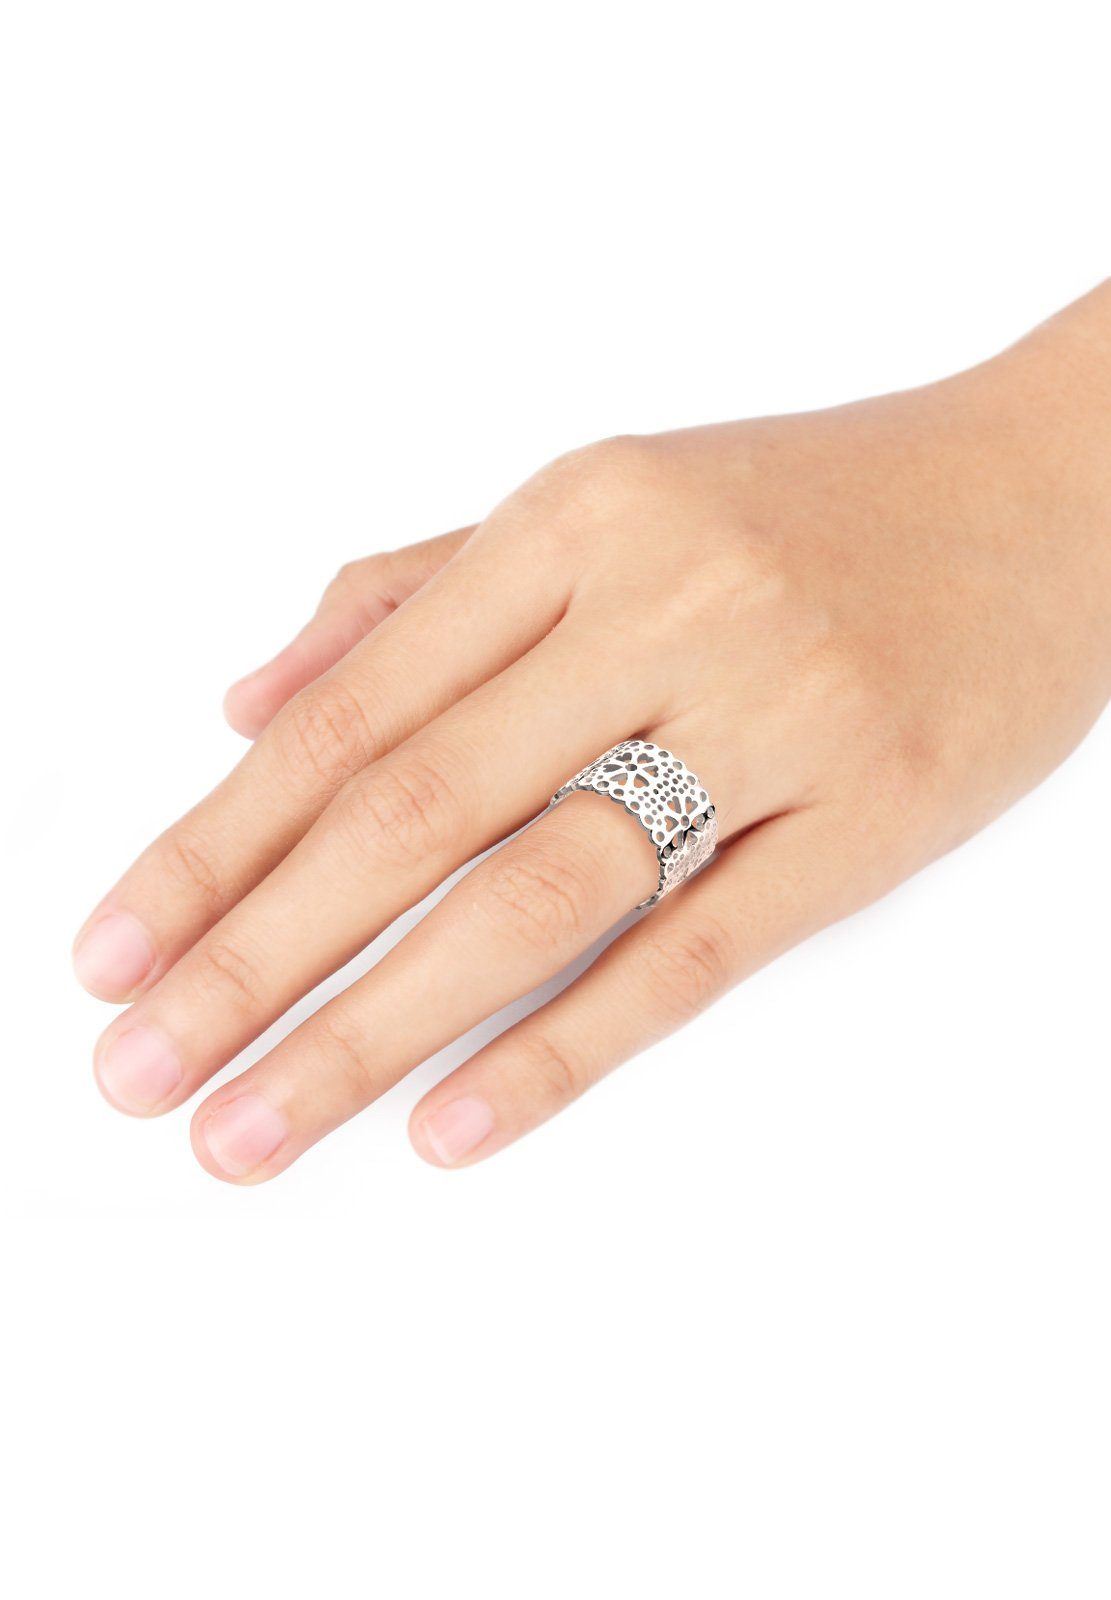 Elli Ring 925 Silber« Cut »blume Ornament Out 45jL3ARq